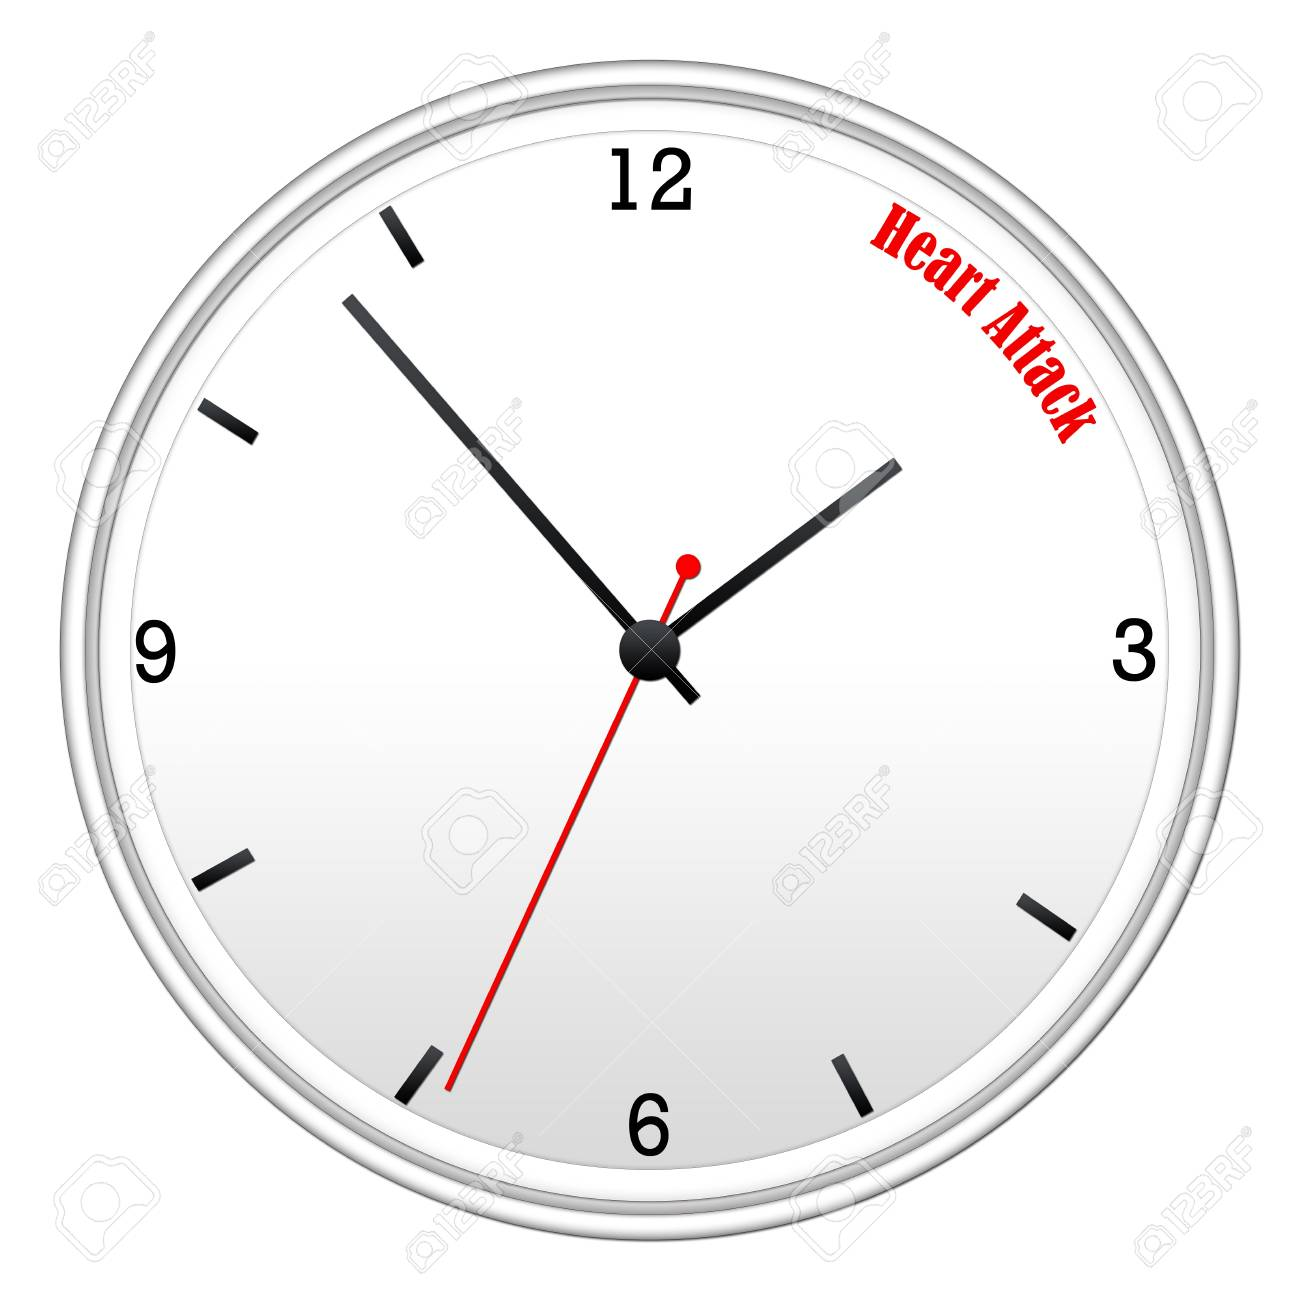 Heart Attack Concept On A White Wall Clock With Hour Minutes